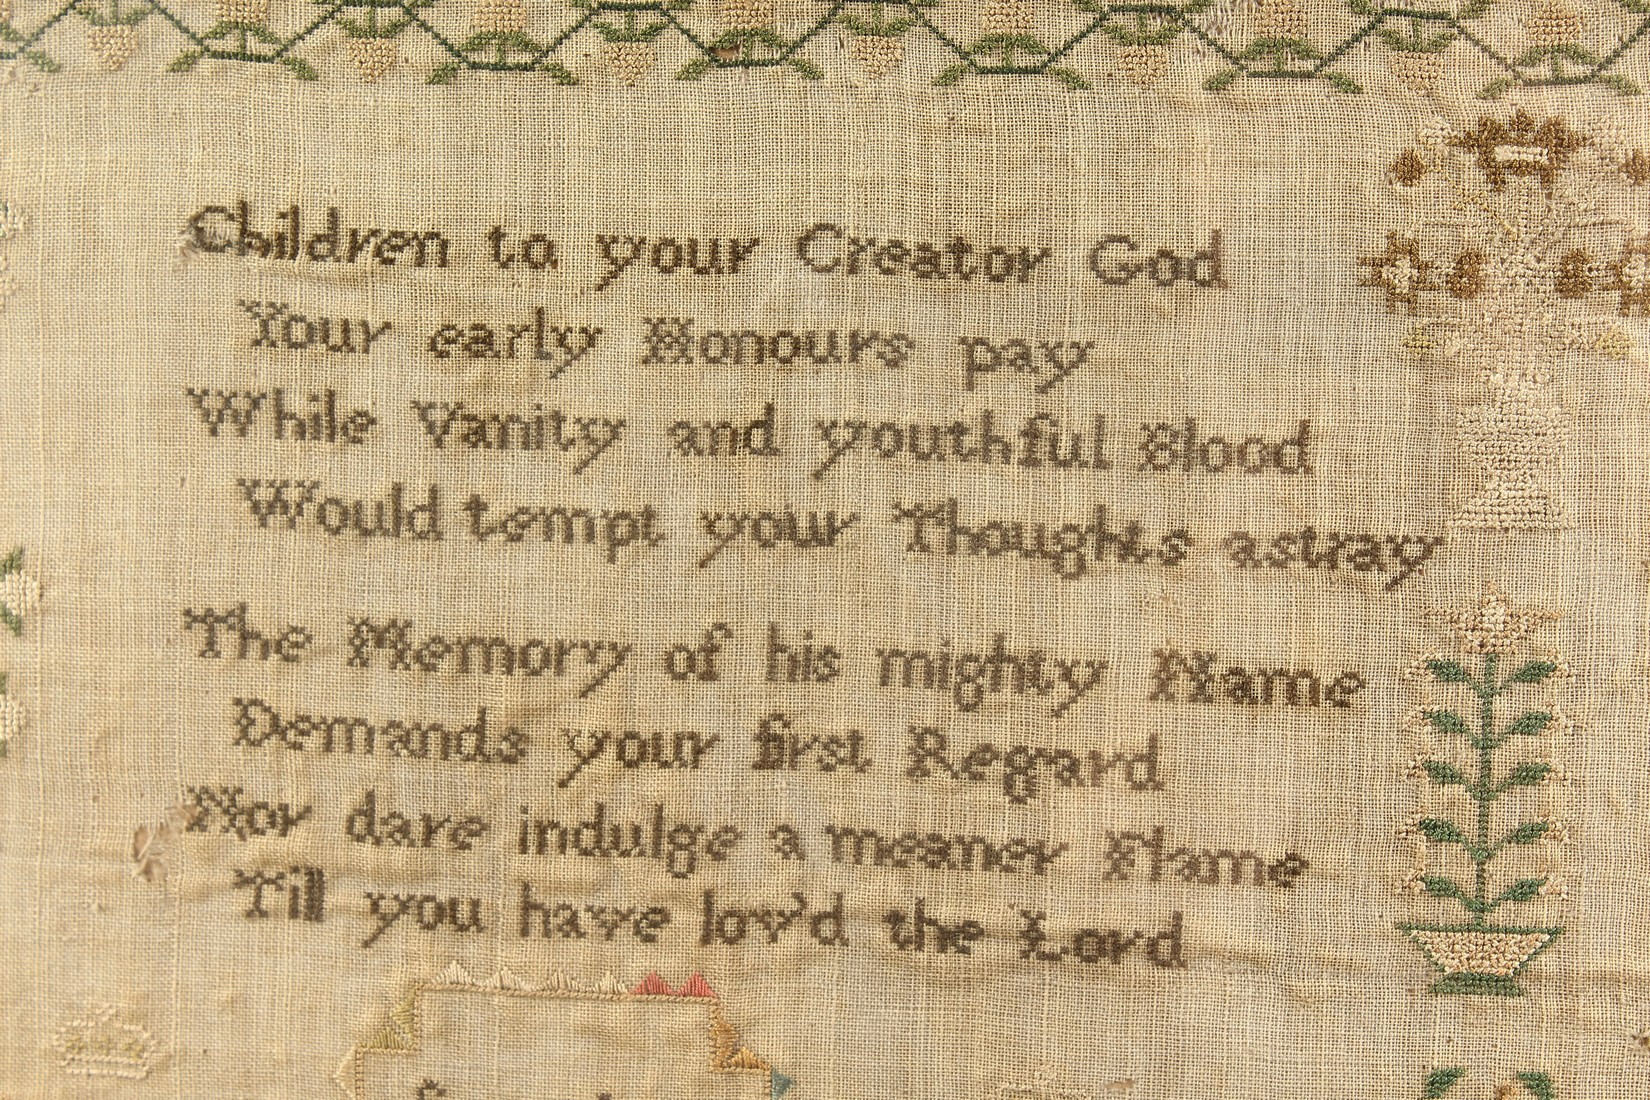 AN 1823 NEEDLEWORK SAMPLER by Sarah Stafford, age 10. 12.5ins x 5ins - Image 2 of 4